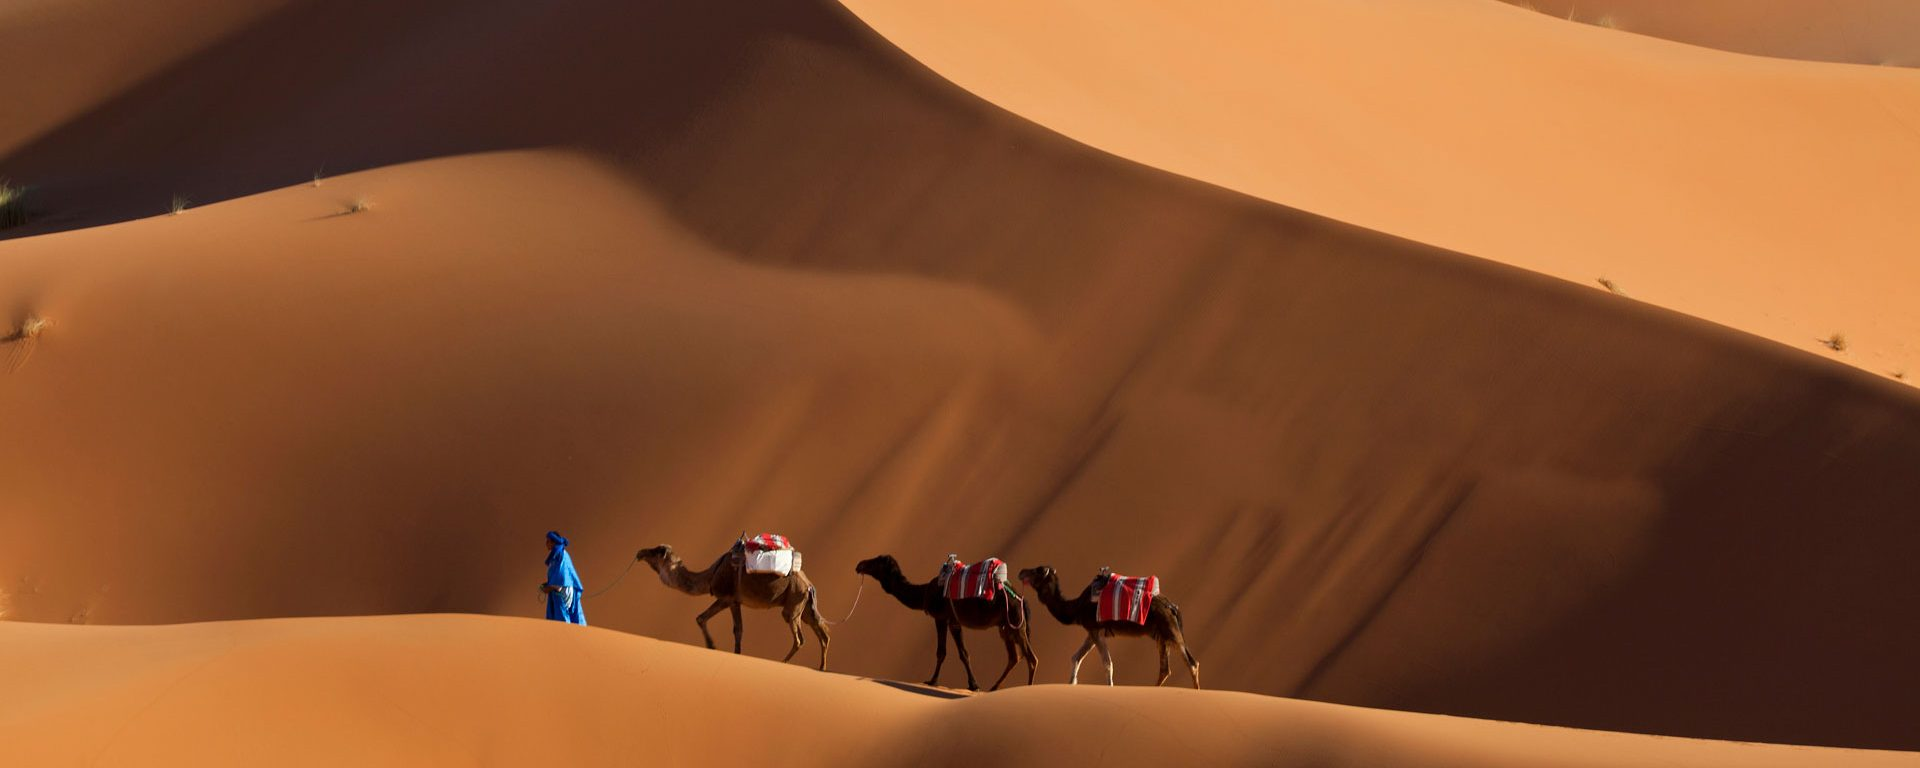 Man guiding camels across the dunes in Erg Chebbi, Morocco